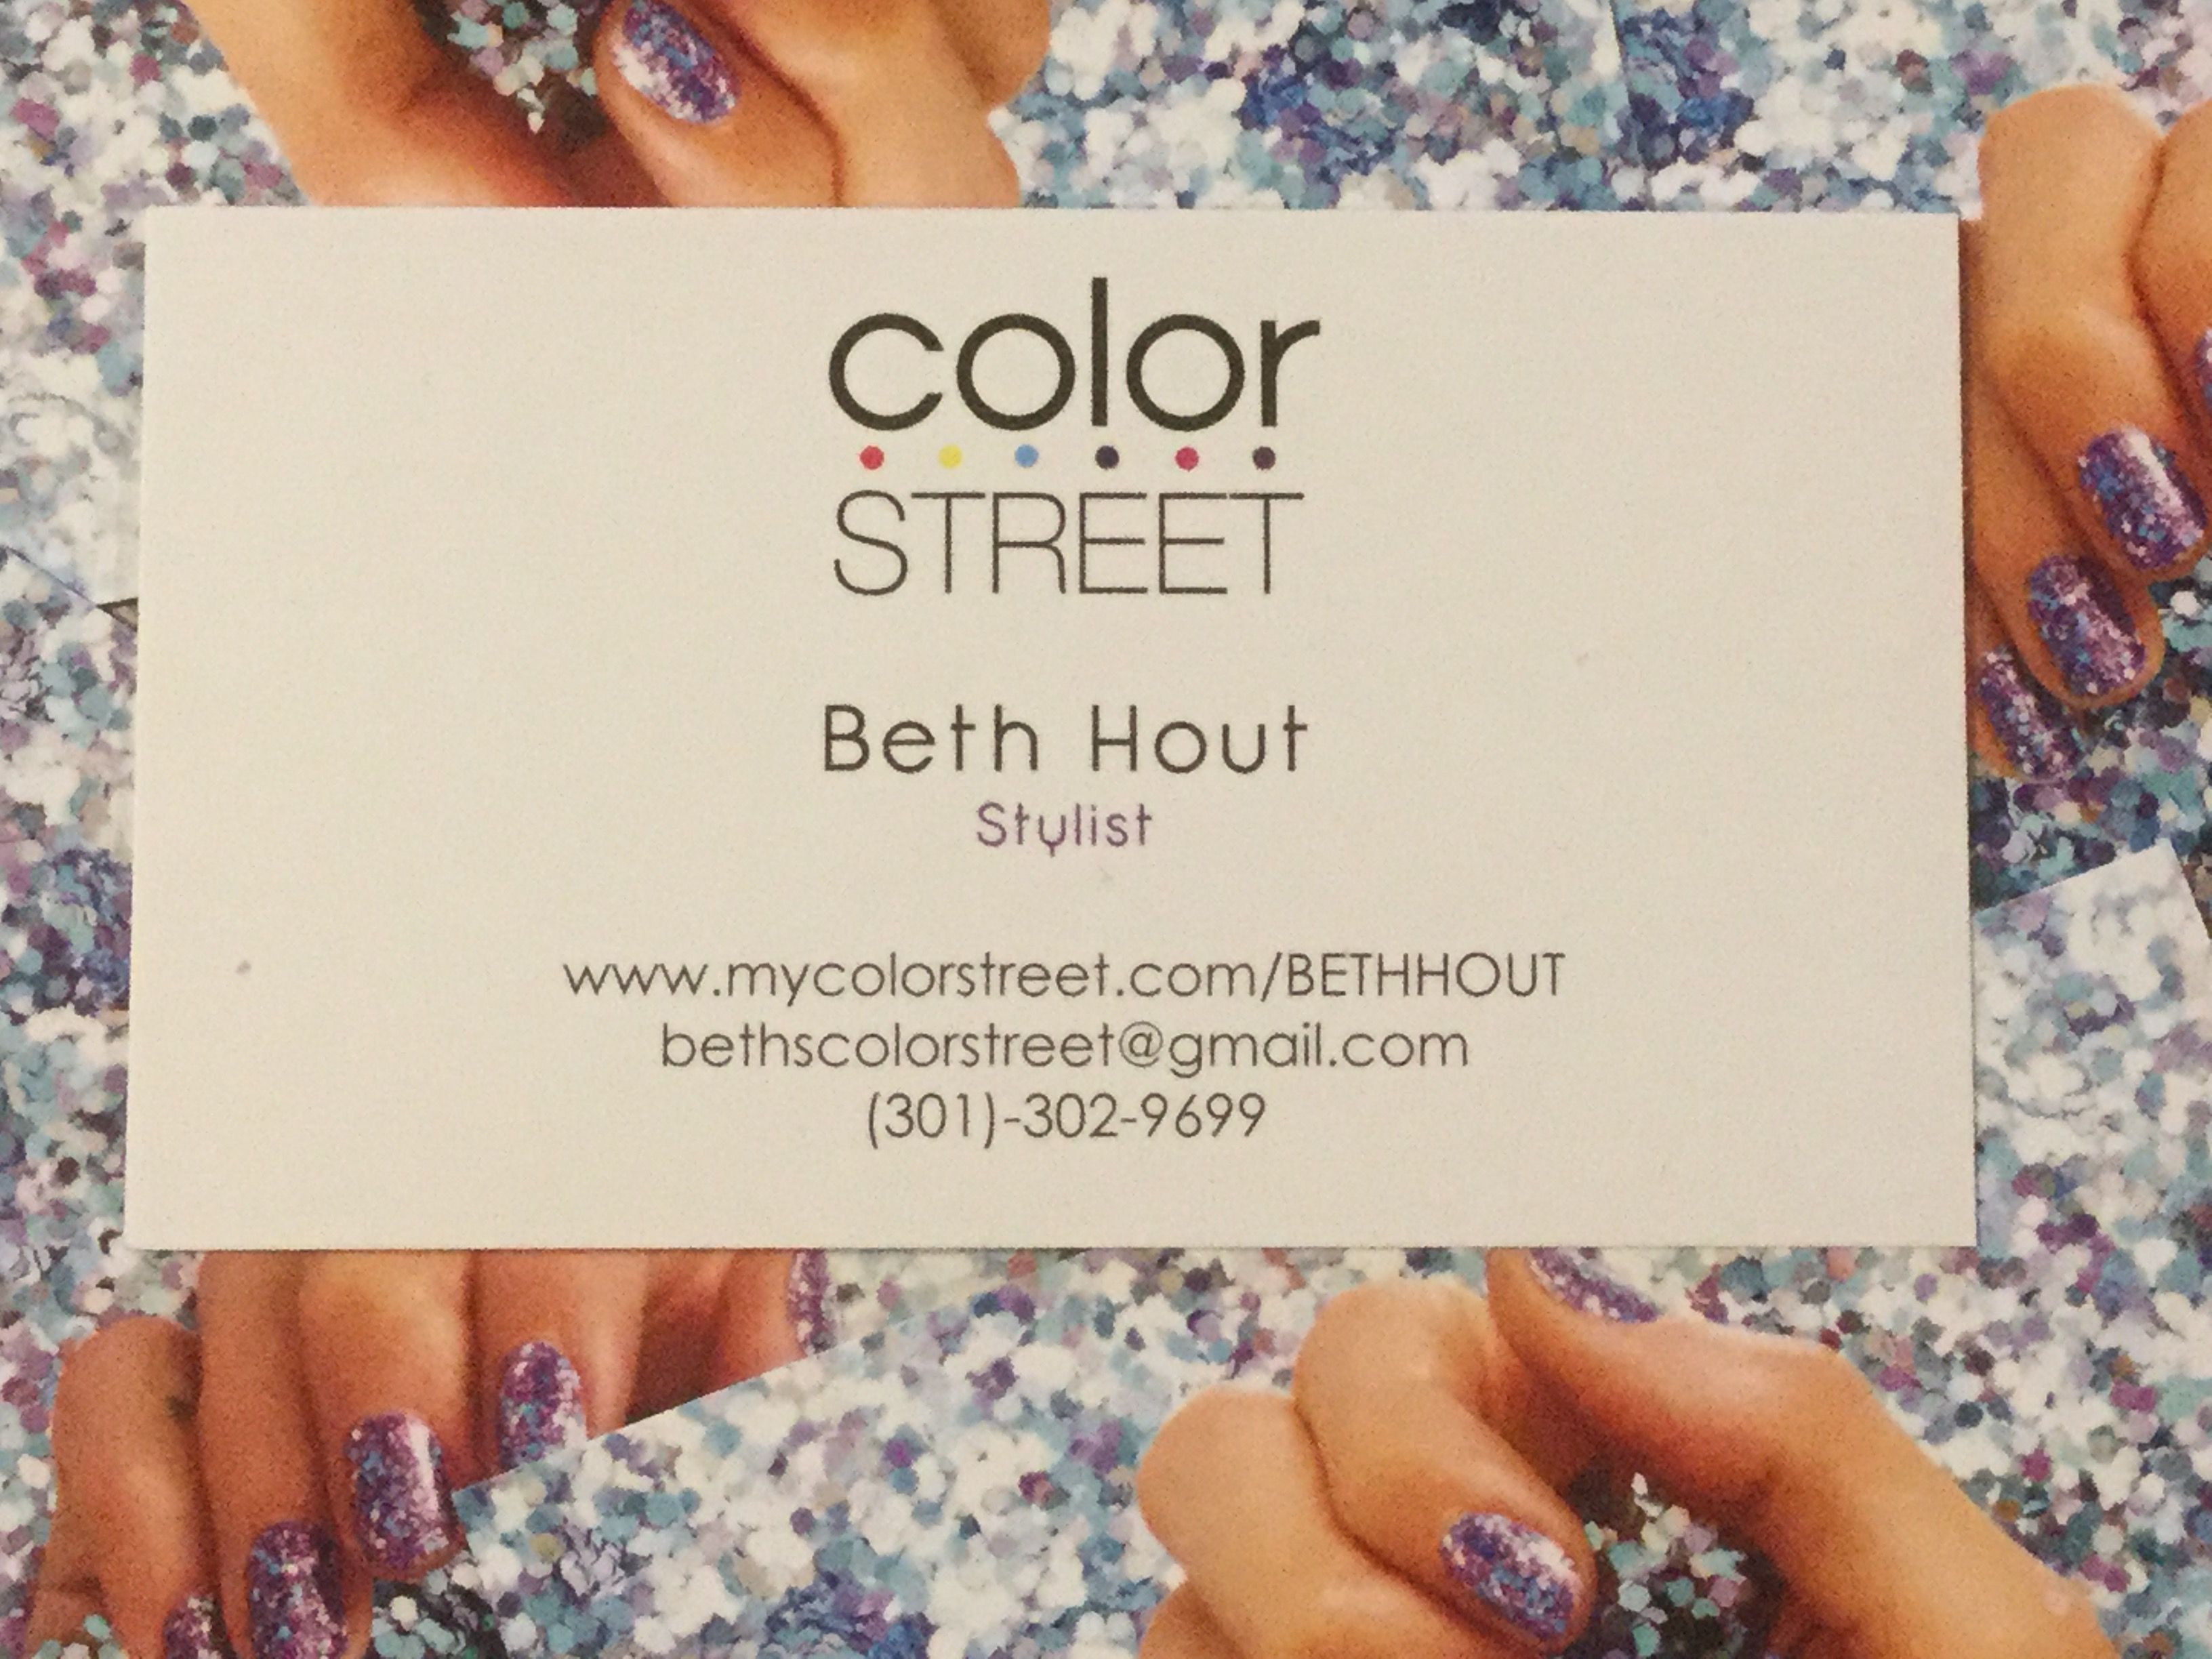 Color Street Nail Business Card. | Color Street Nails | Pinterest